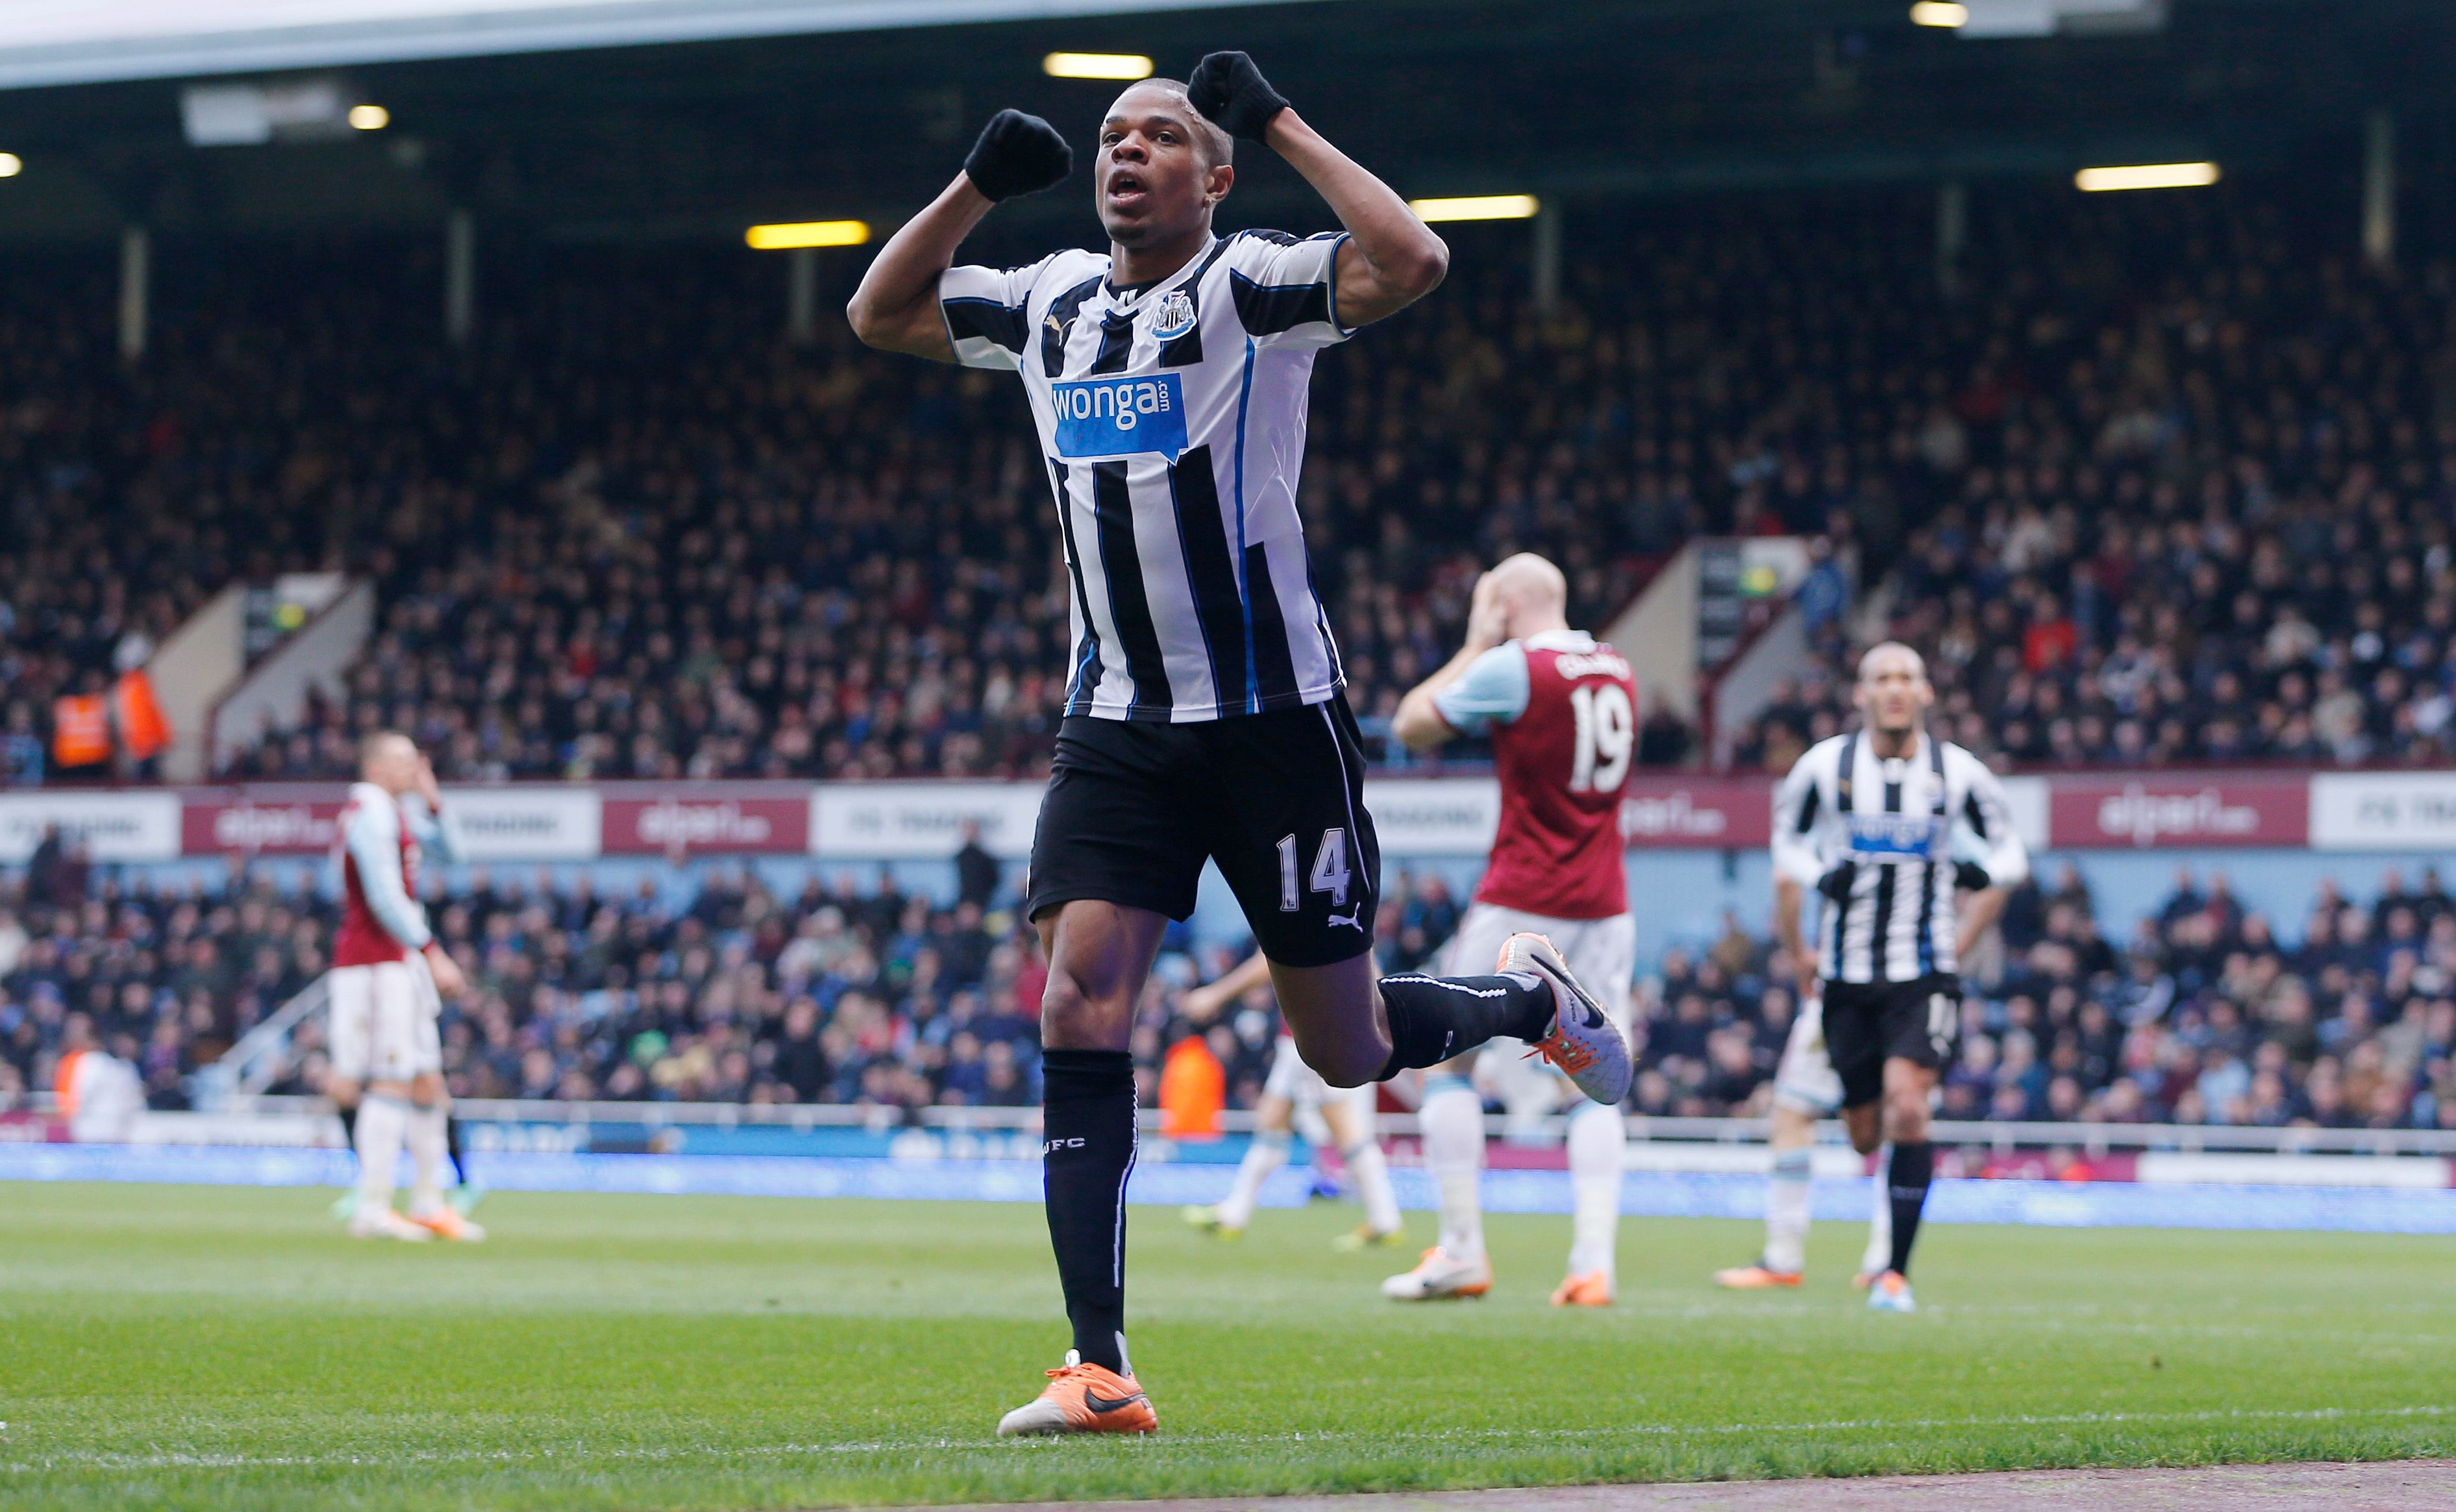 Rumour: Newcastle United's on-loan striker Loic Remy to Arsenal?